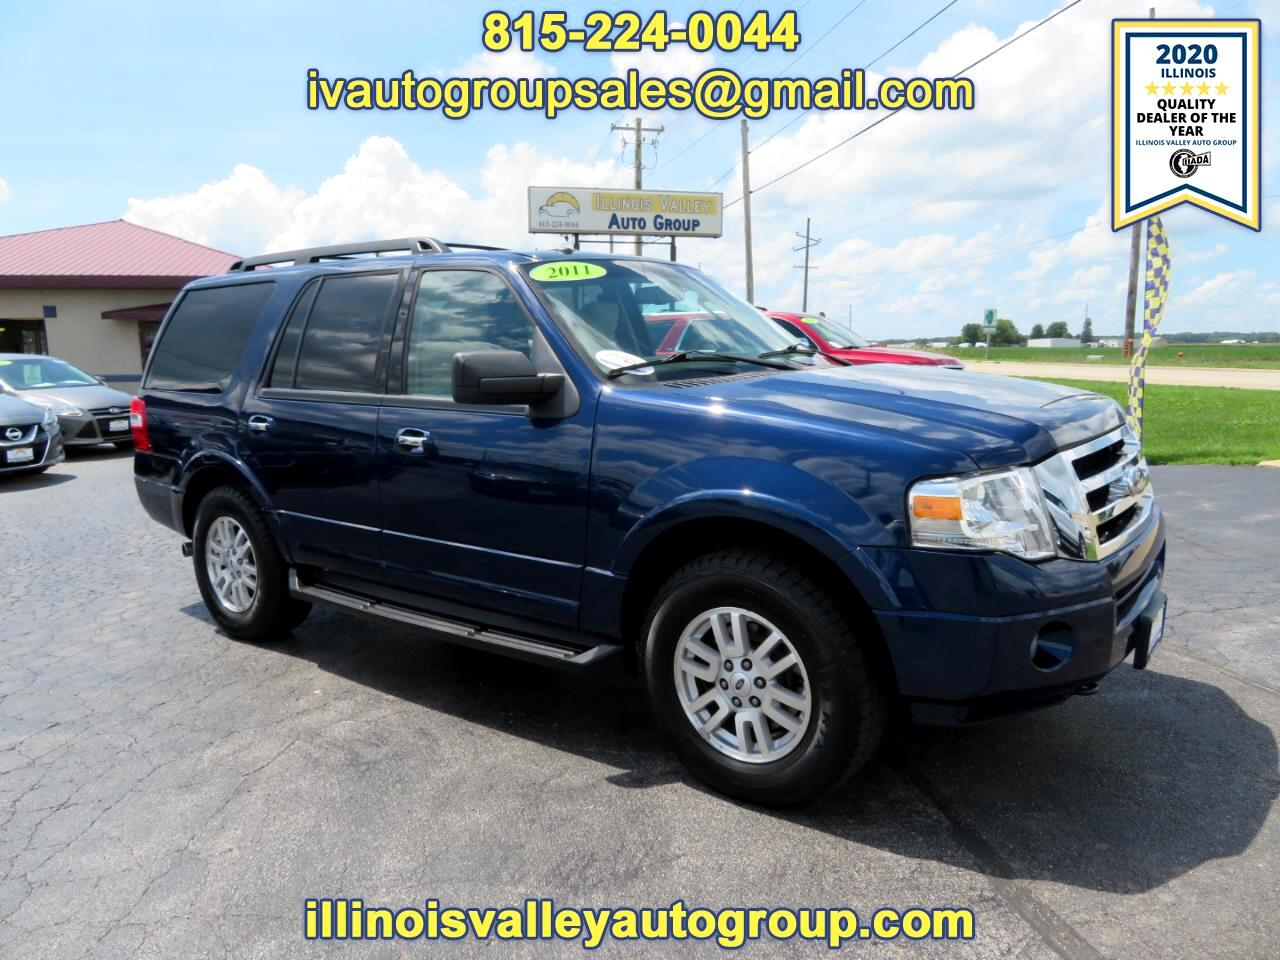 Ford Expedition XLT 4WD 2011